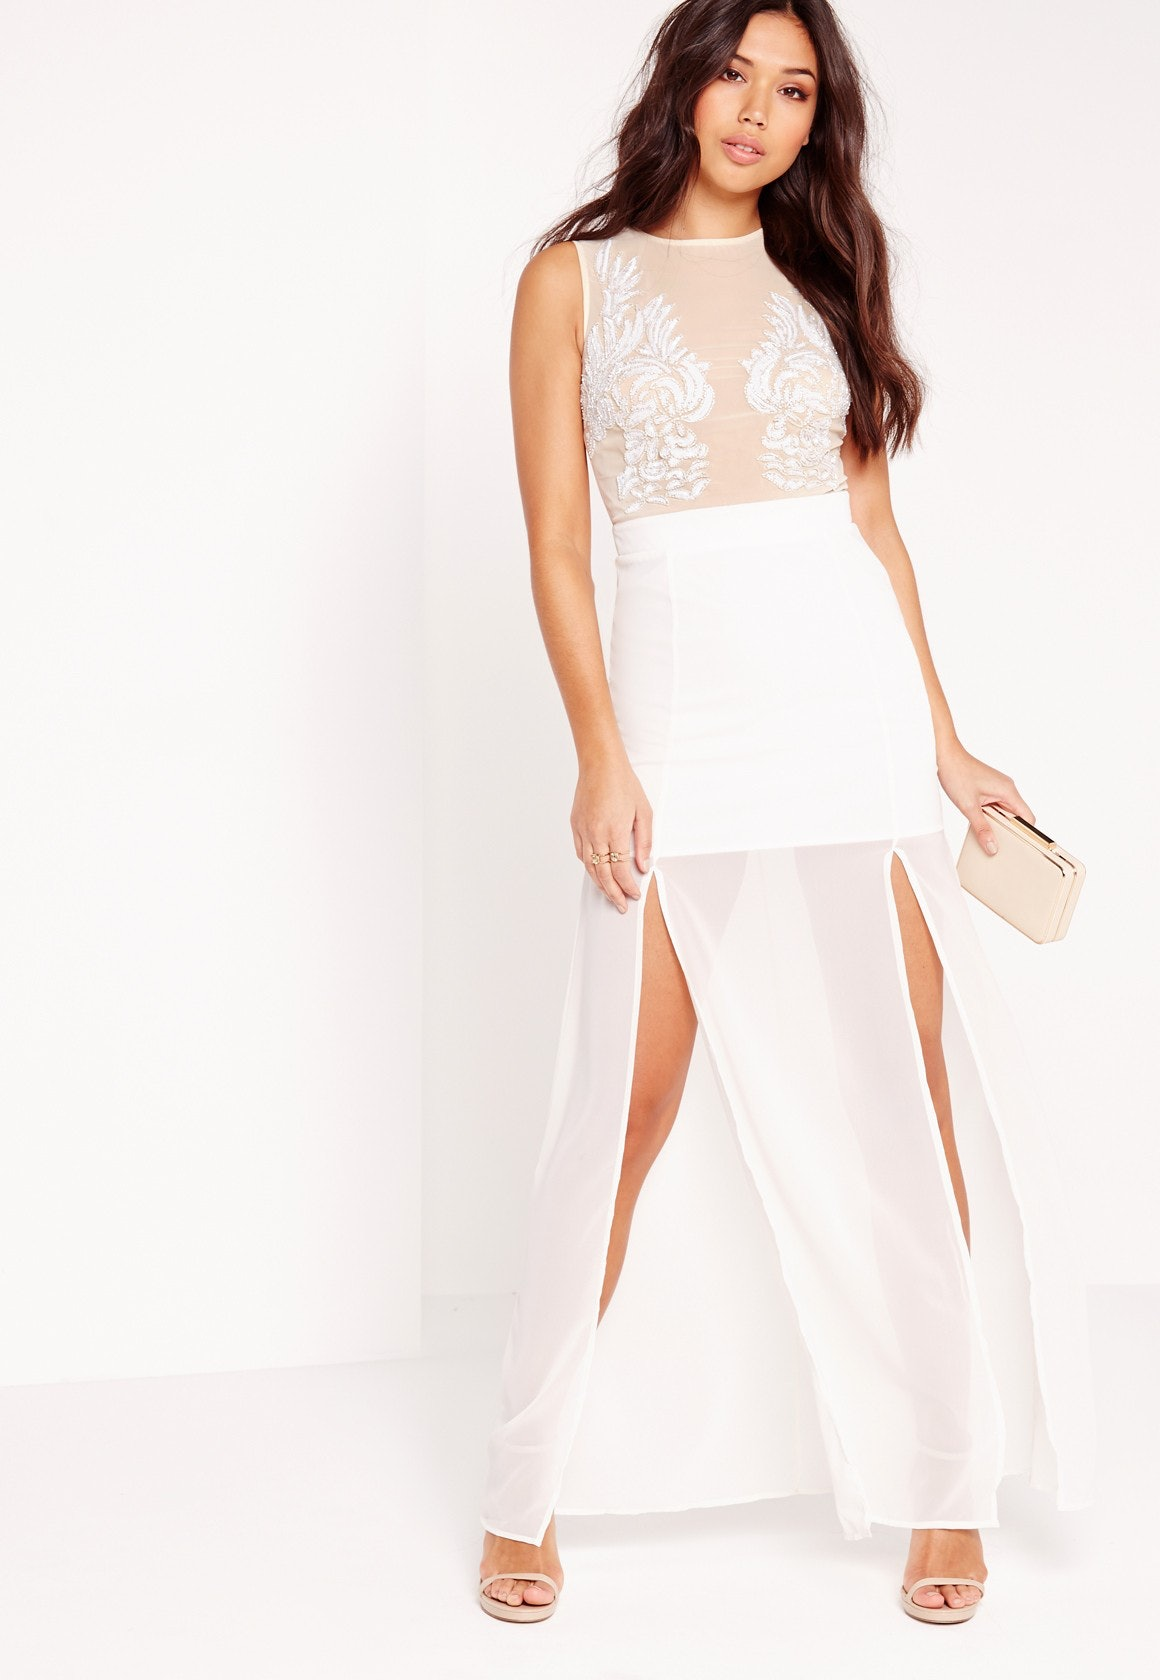 5876c7d3c4 Where To Buy The Missguided Bridal Collection For Cool Wedding Vibes —  PHOTOS